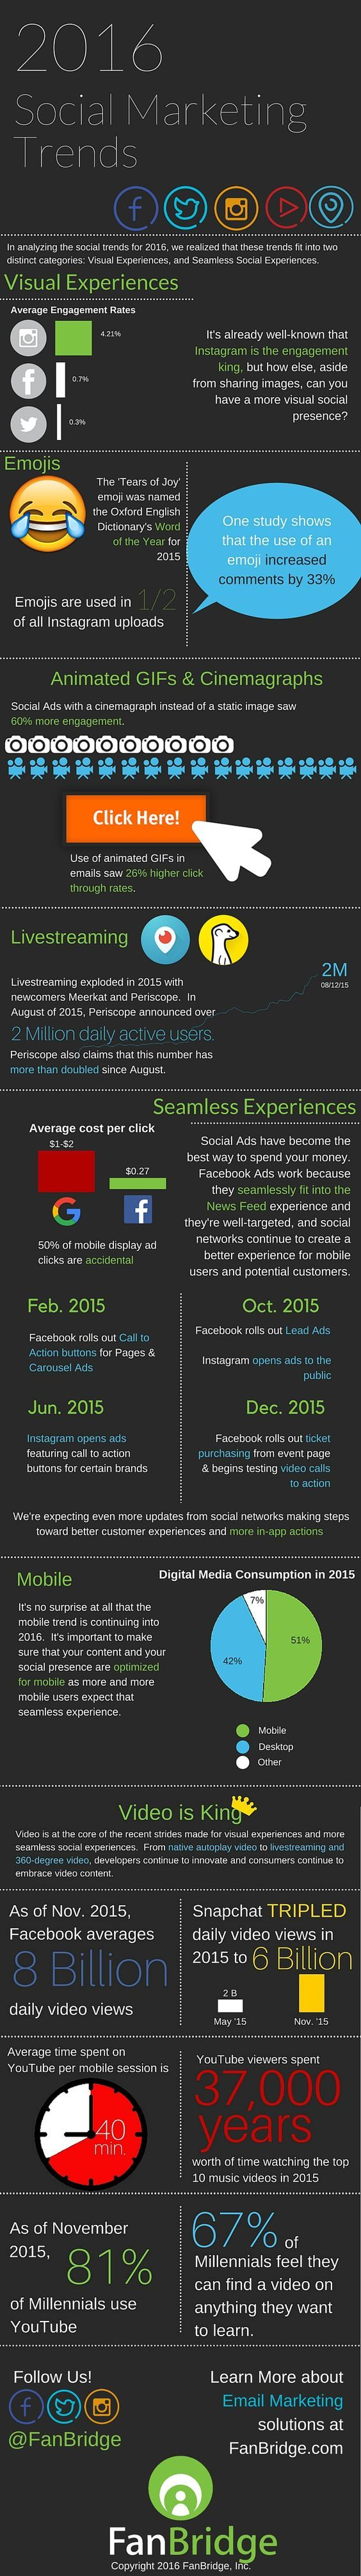 Socia-Media-Marketing-Trends-2016